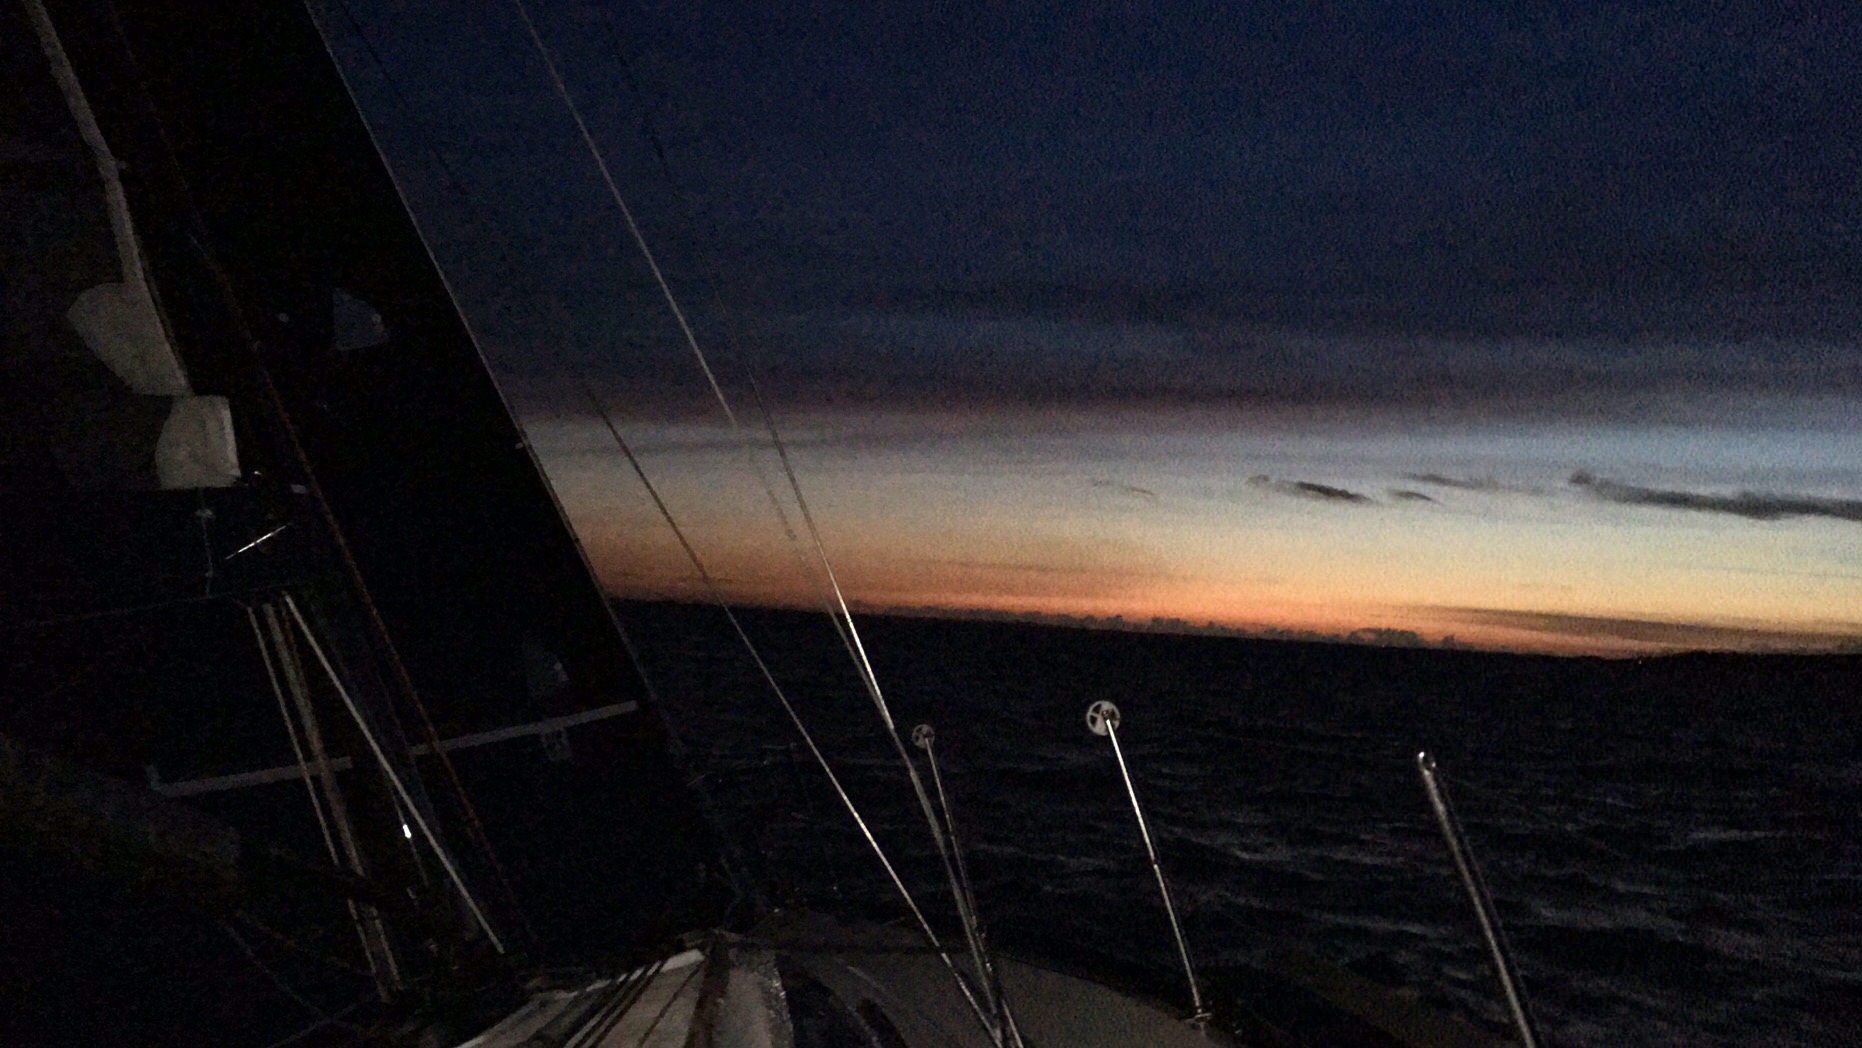 """""""I had too much adrenaline to get sleepy; too much competition to relax. I made five spinnaker changes on a tight reach between midnight and 0600, all that moving around kept me awake,"""" said Stefan Voss, skipper of the X332 DOGMATIX."""